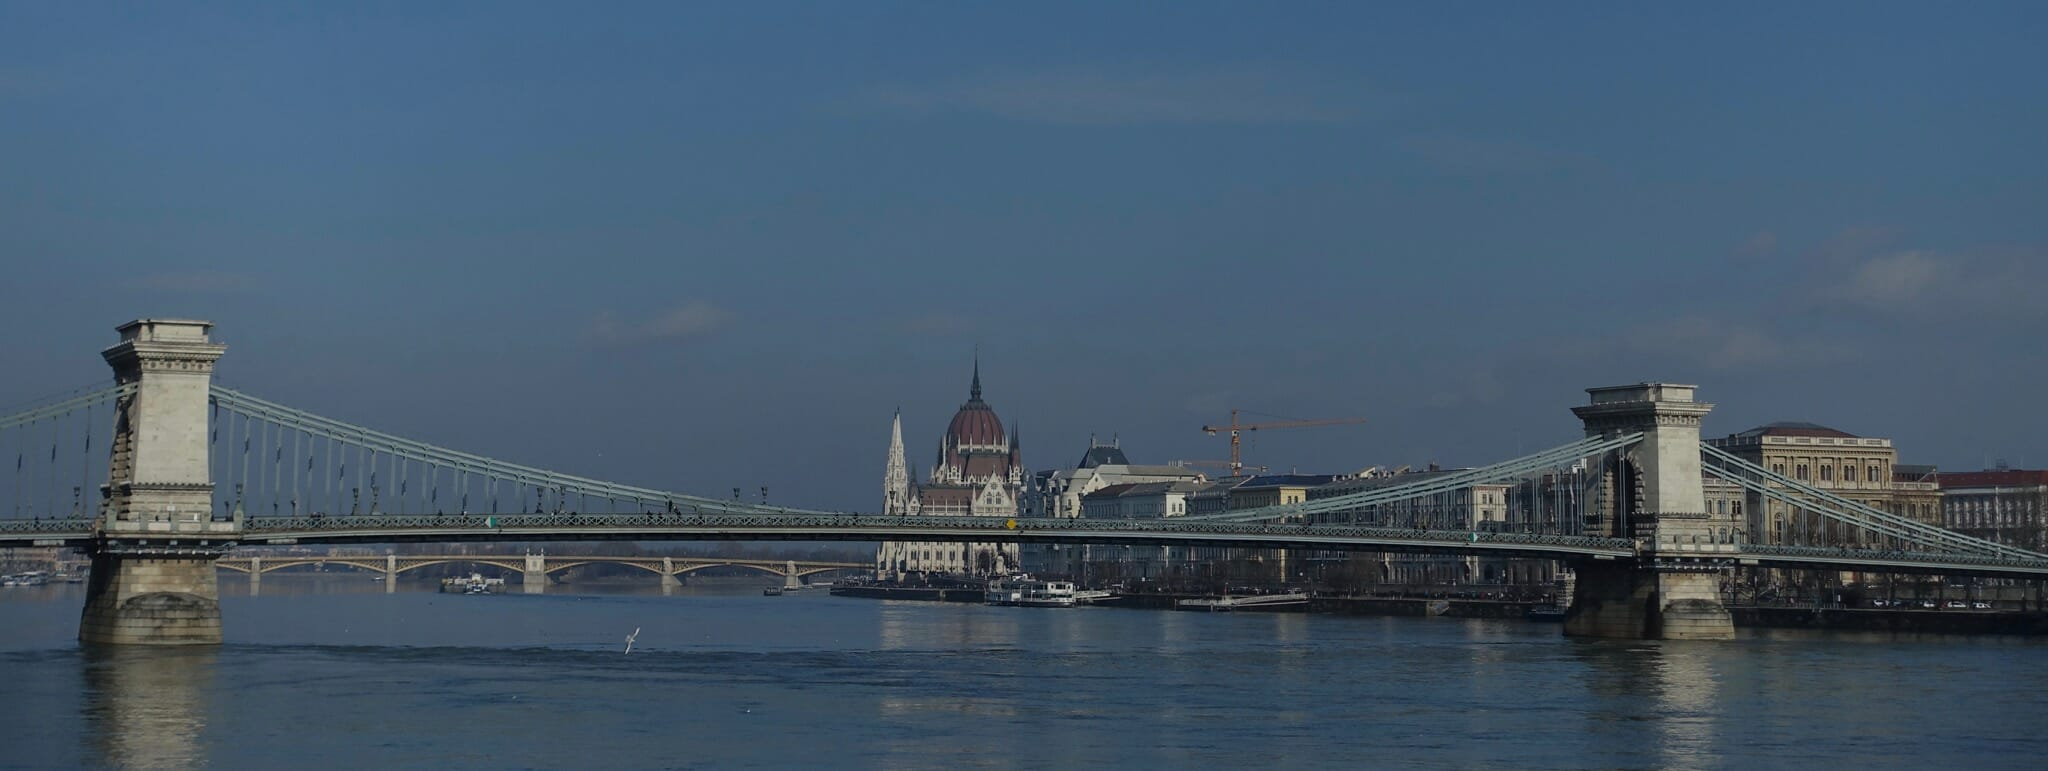 Chain Bridge and Hungarian Parliament Building